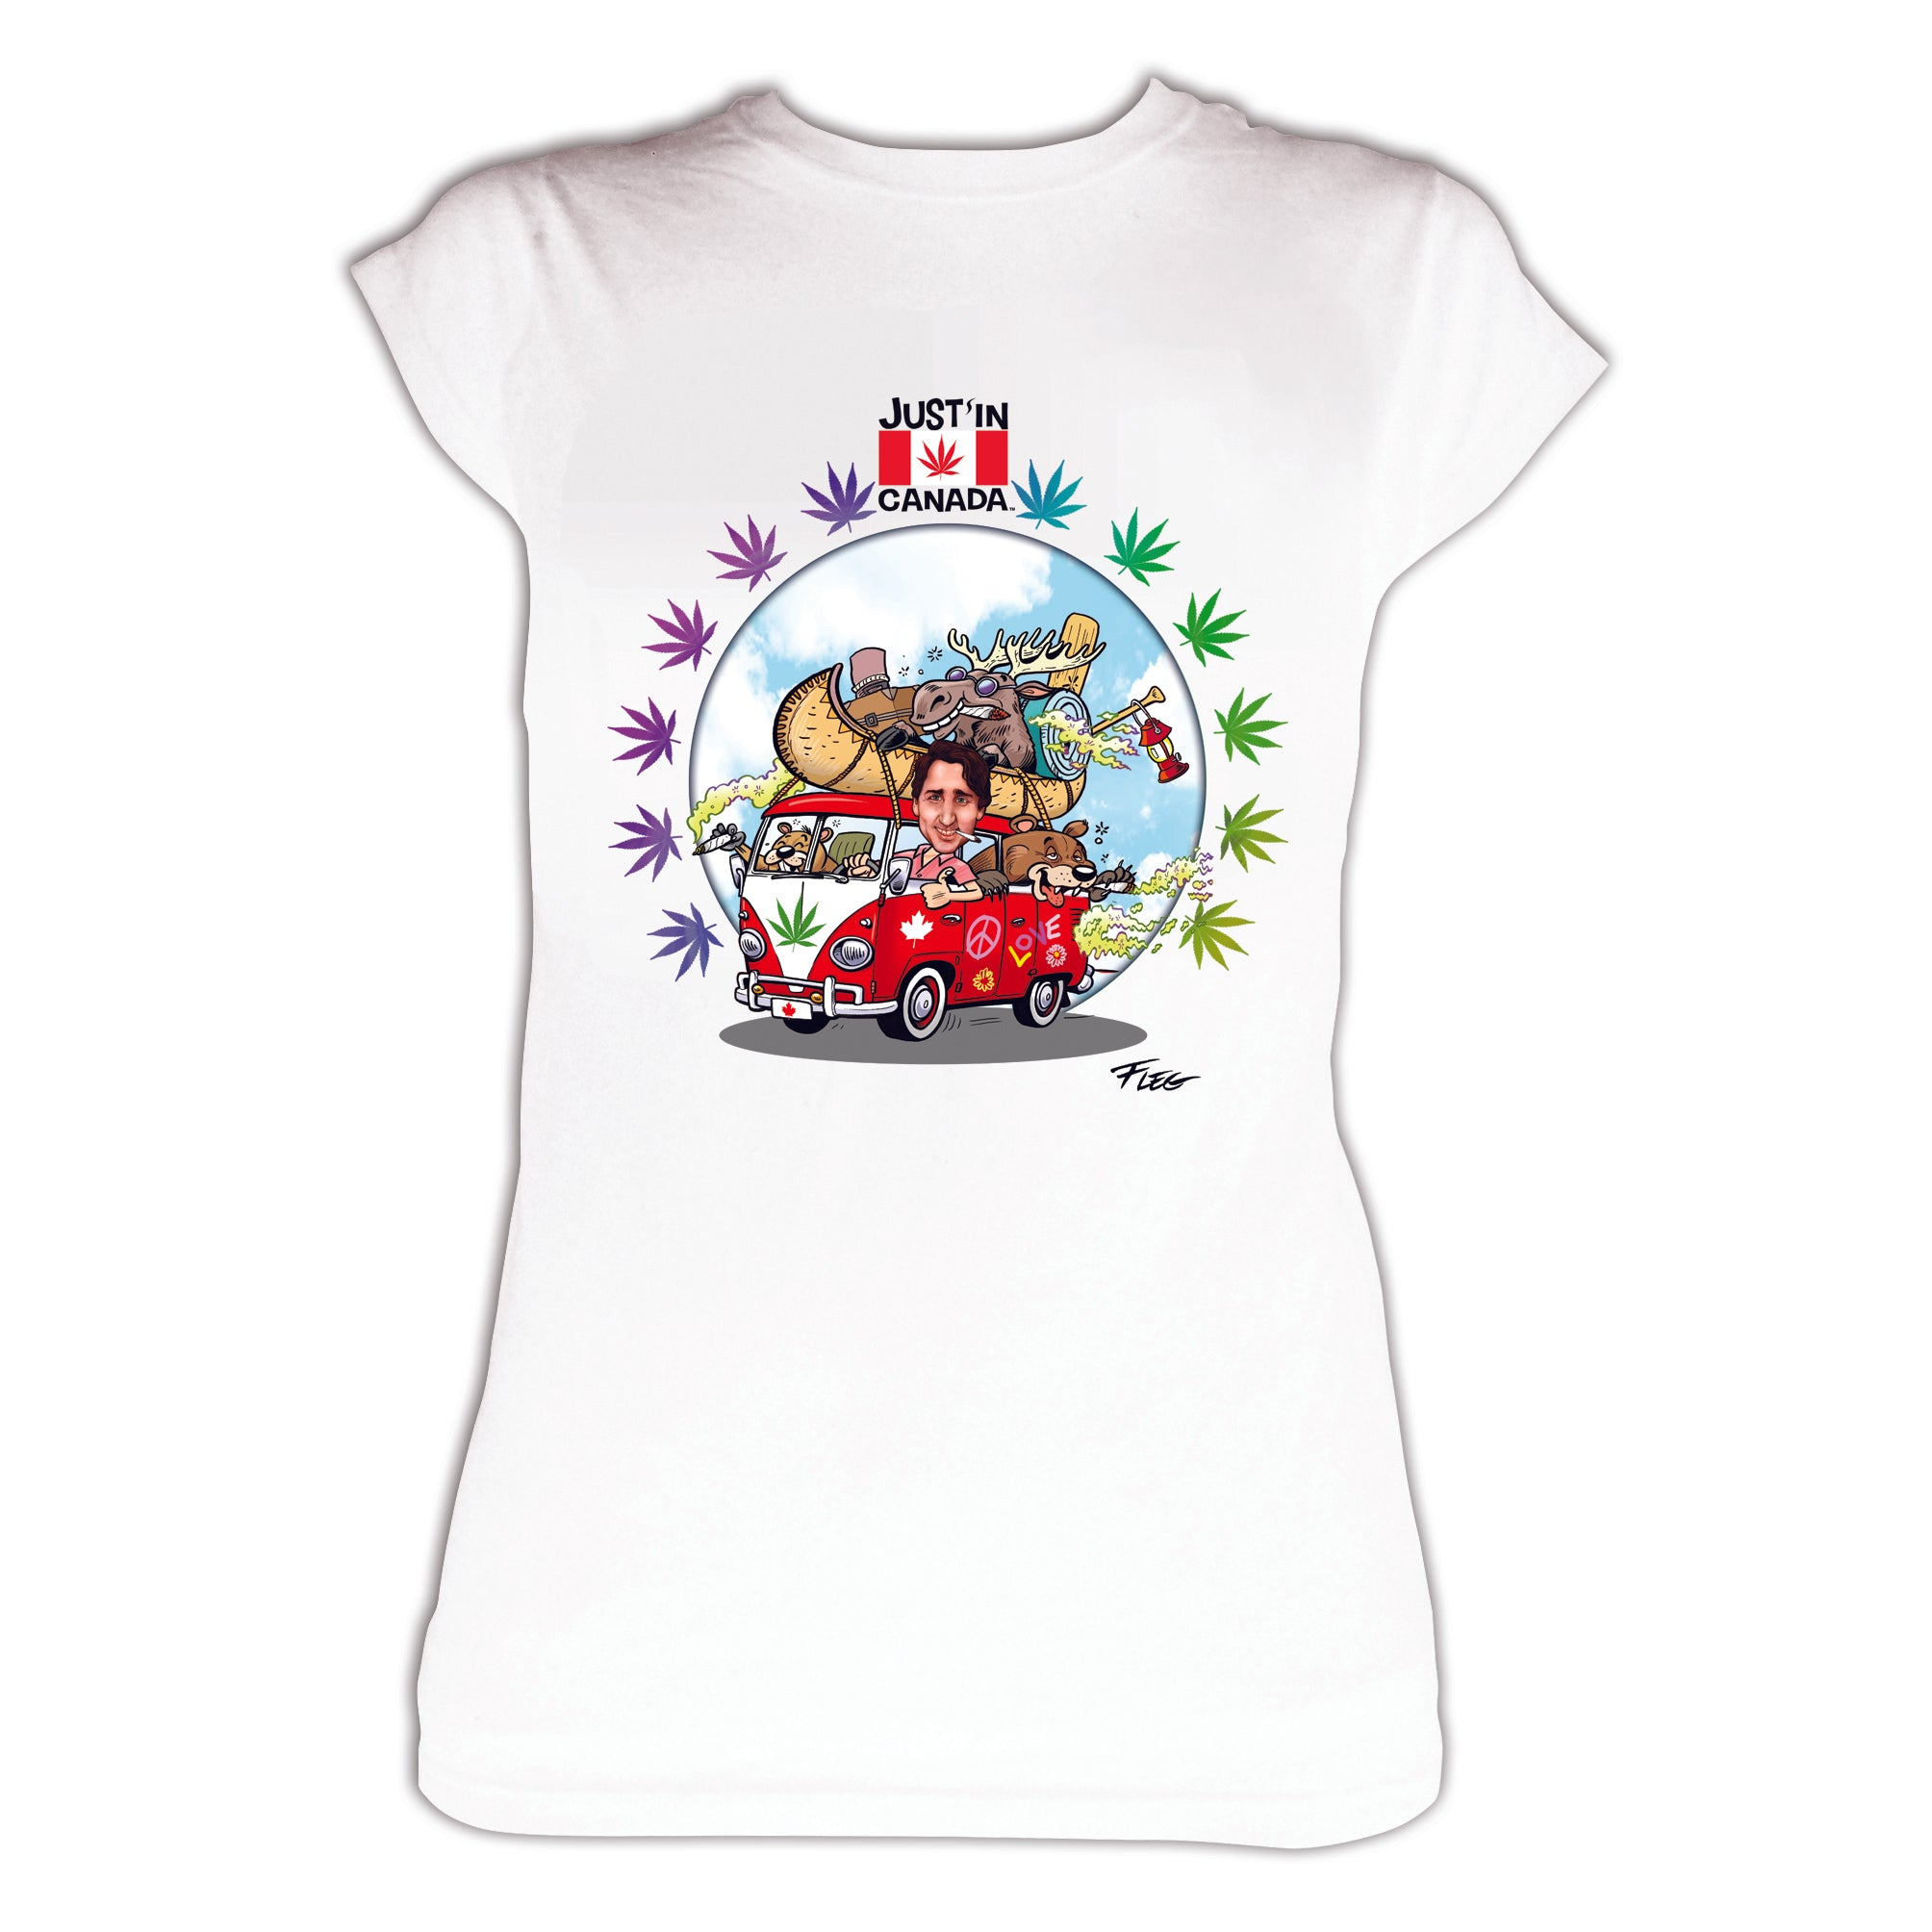 Justin Trudeau womens white T‑shirt